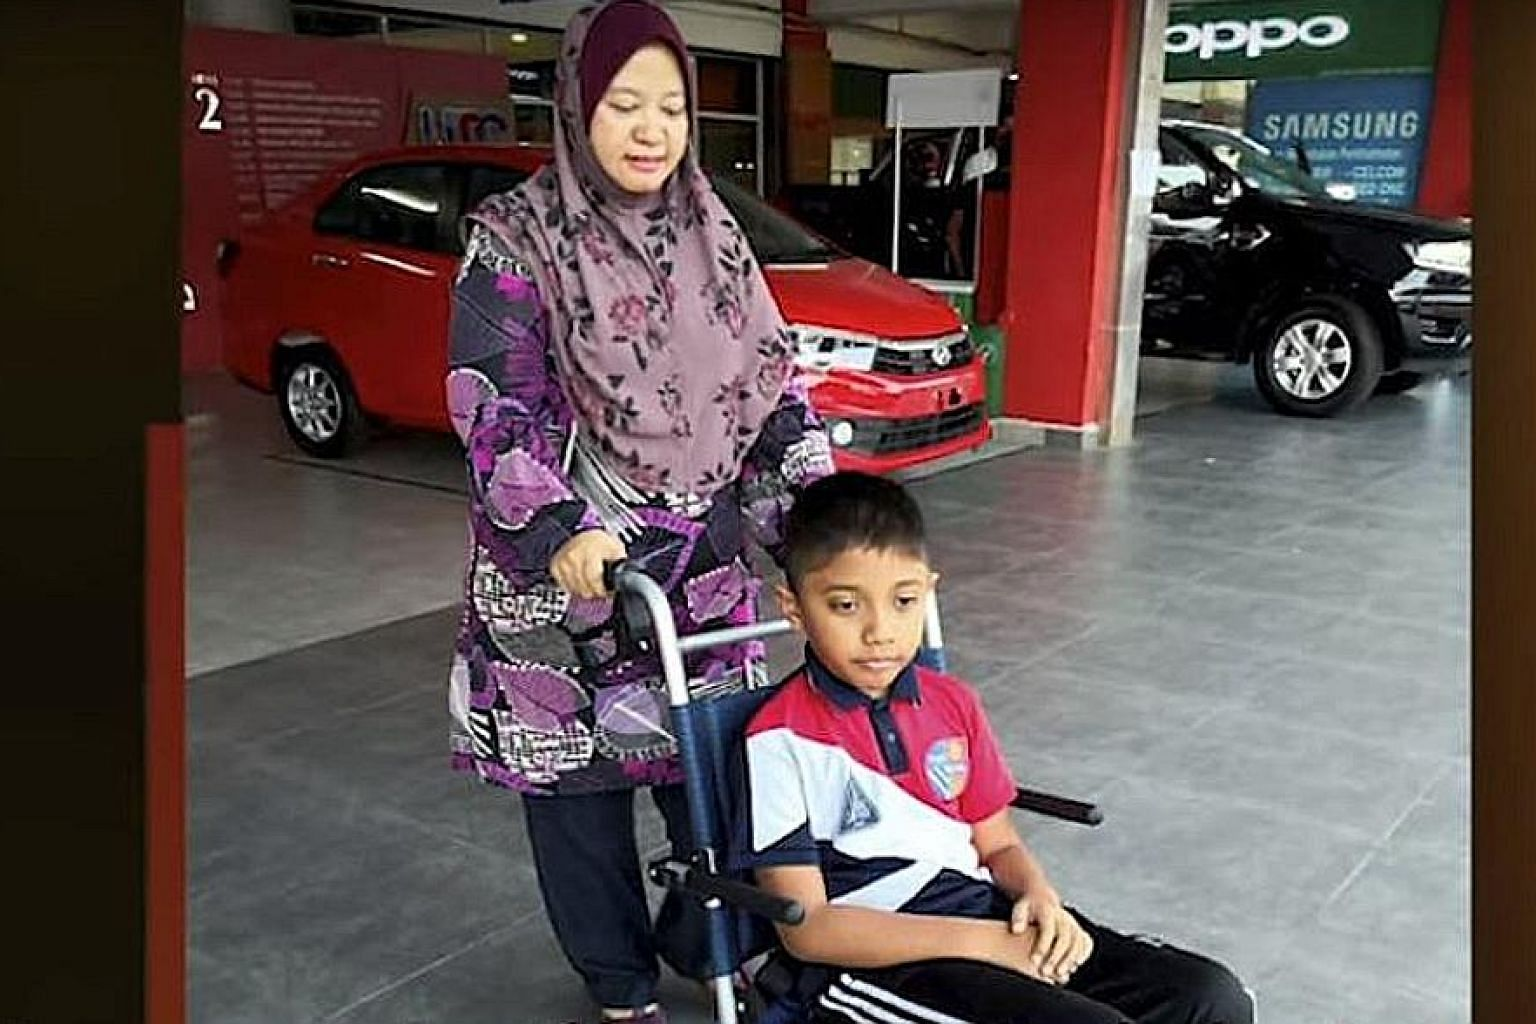 Twelve-year-old Irfan Wafiy Idham Wazir developed myokymia after sniffing poisonous gases from Sungai Kim Kim in Pasir Gudang. The Parkinson's-like condition causes parts of the body to tremble. PHOTO: METROTV